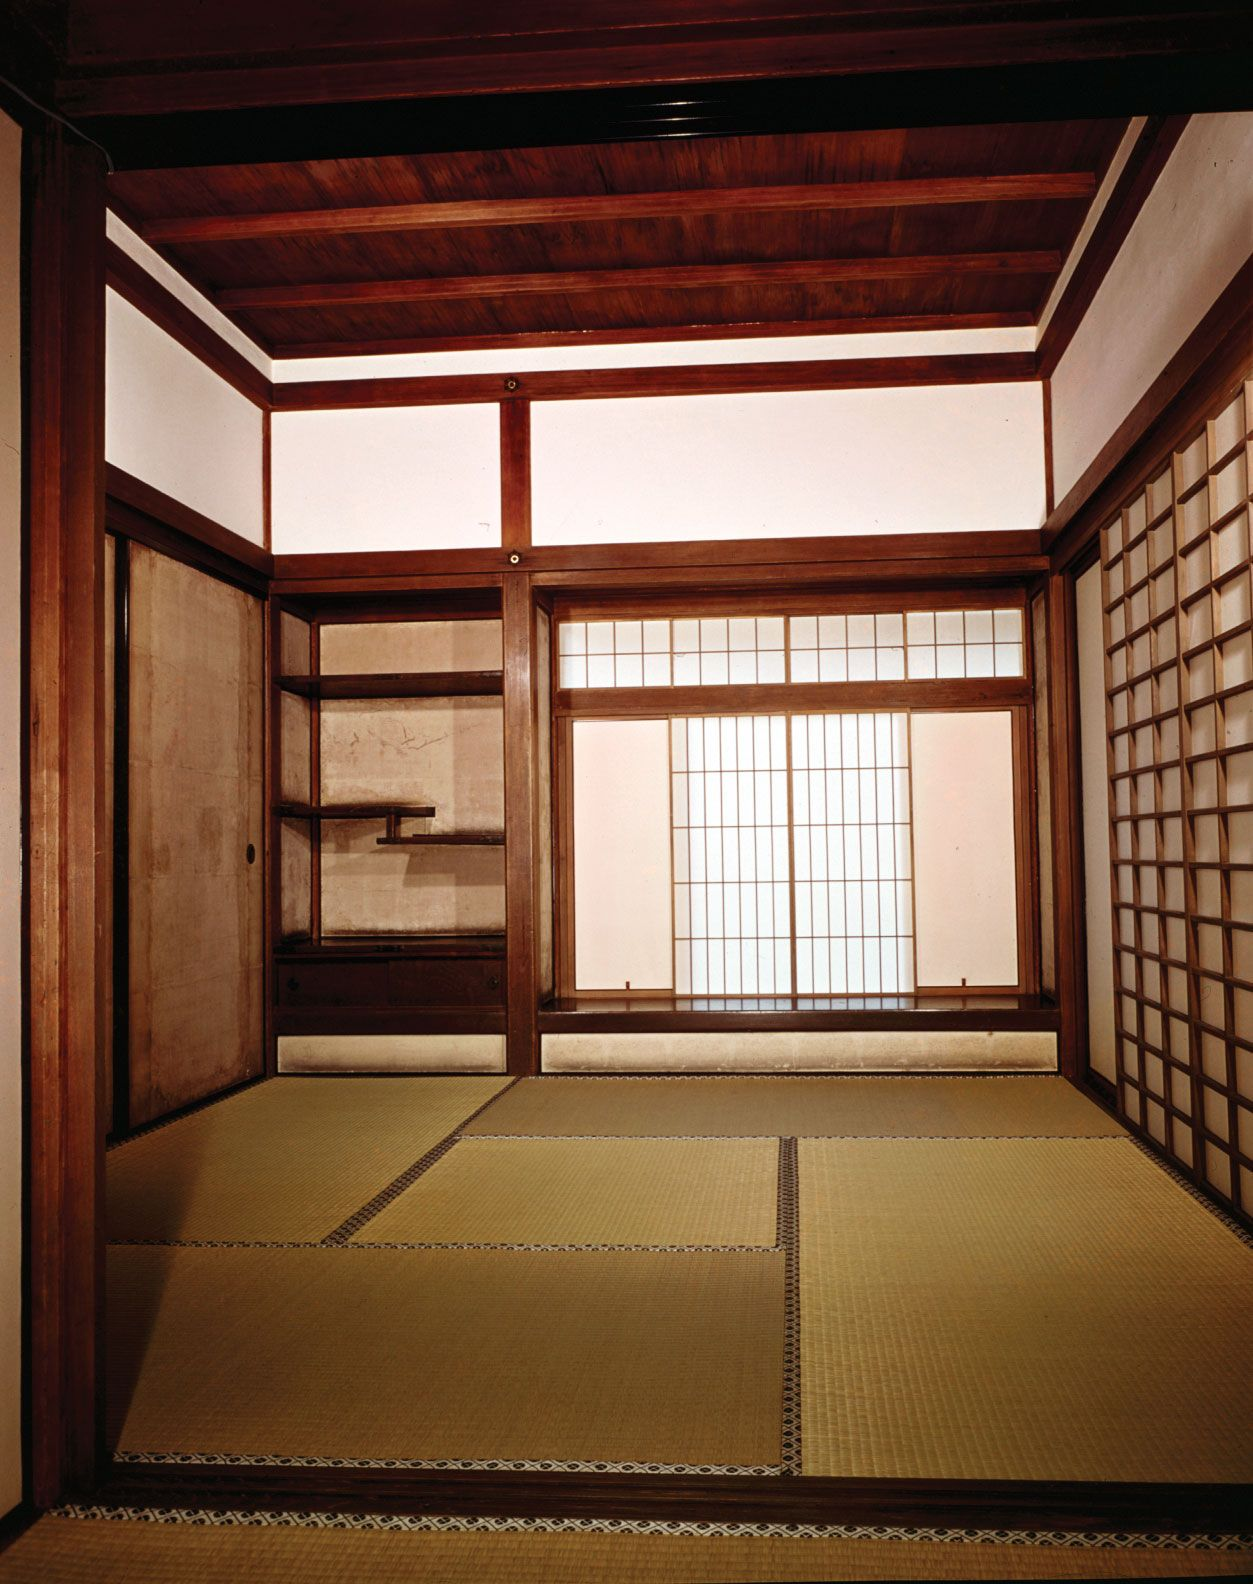 10 Kitchen And Home Decor Items Every 20 Something Needs: Japanese Architecture: Shoin-zukuri Interior In The